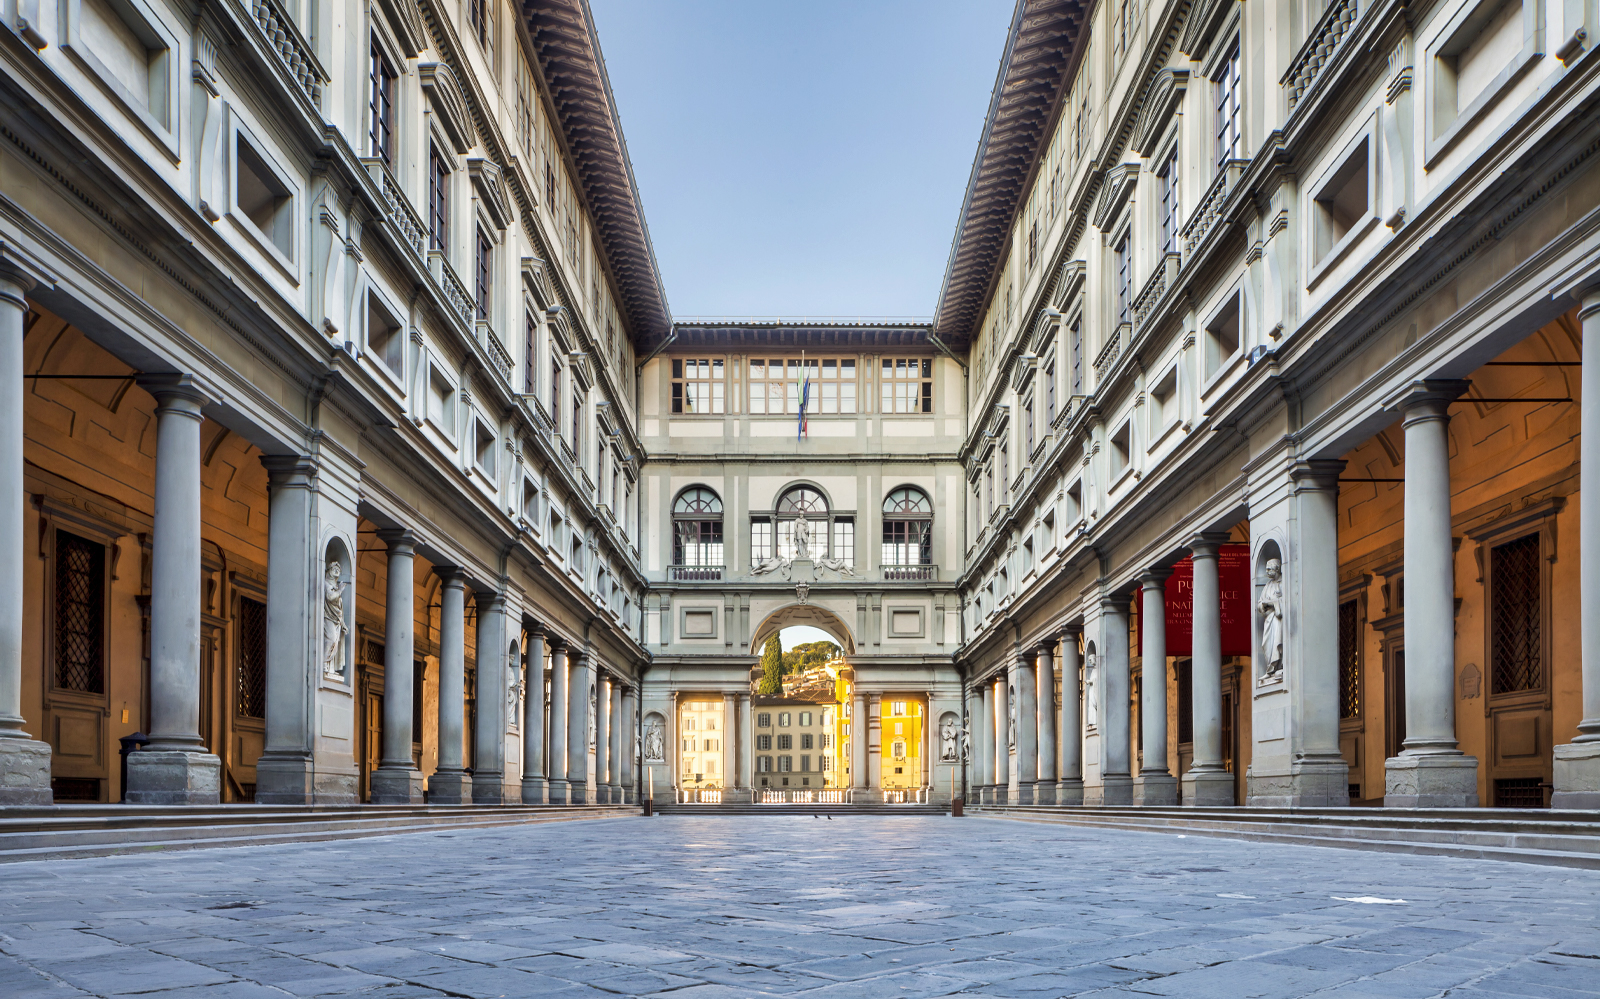 32582ac6 6590 4ae4 bf21 c7f3a089f3c0 7601 florence guided tour of accademia and uffizi galleries with priority access 01